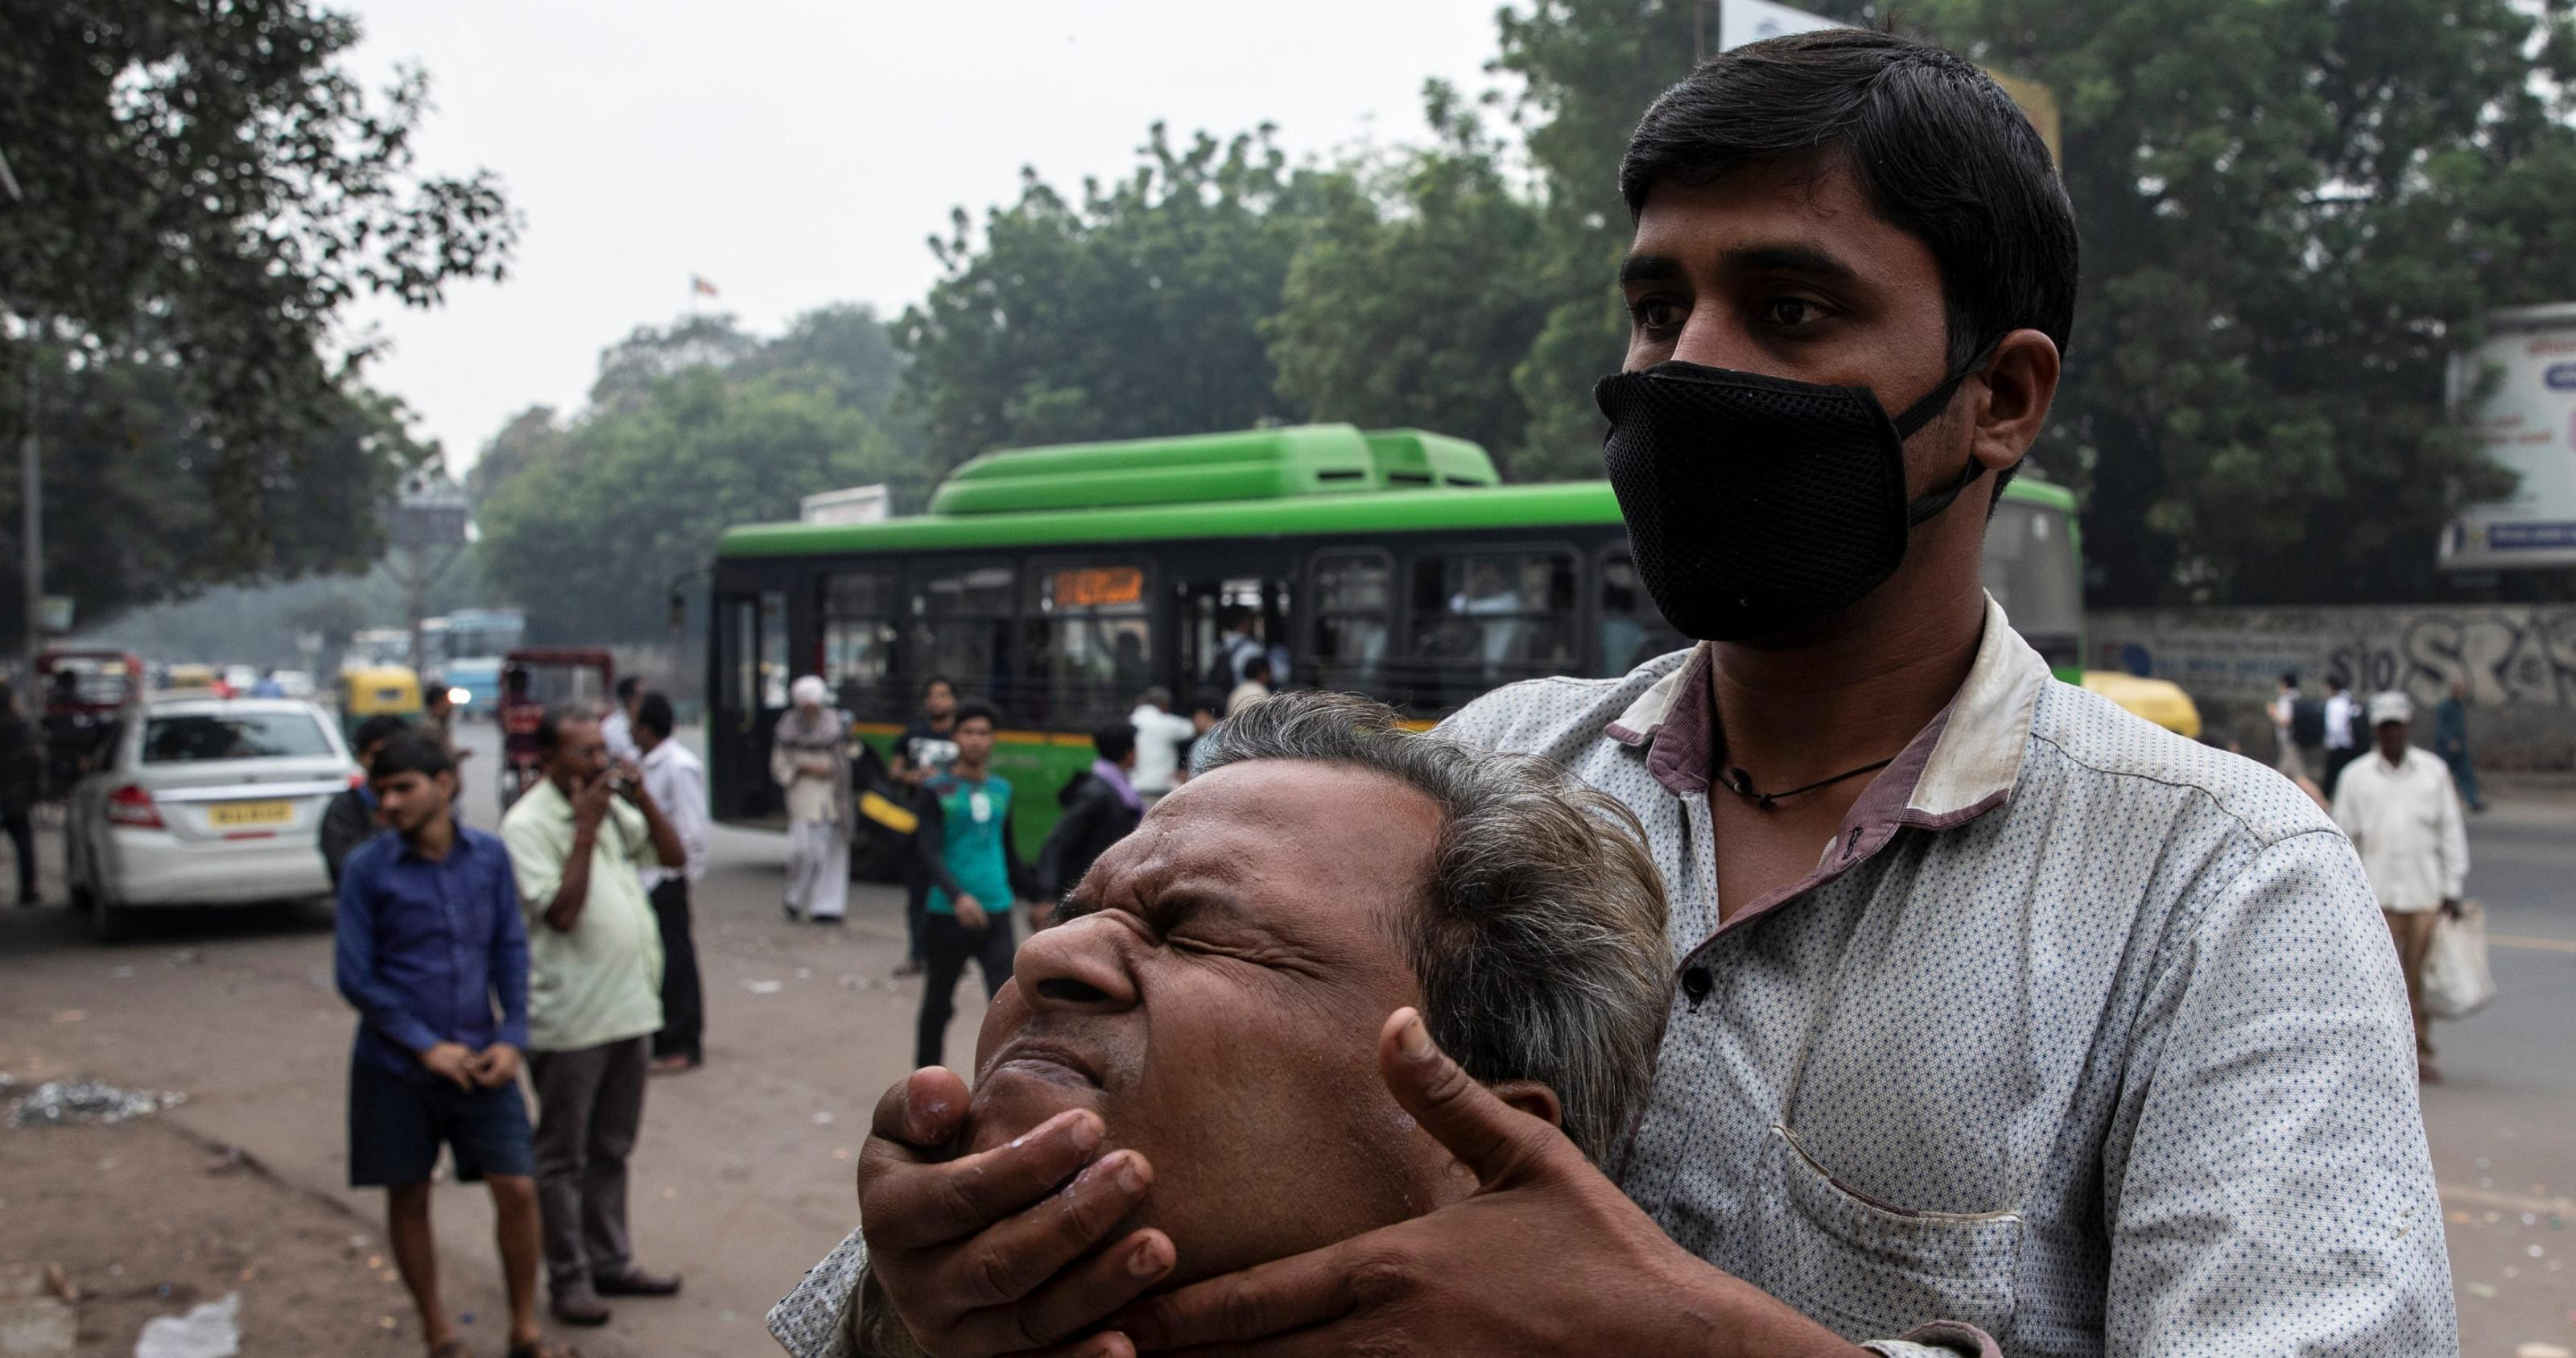 Anti-pollution masks have become essential in Delhi's toxic air